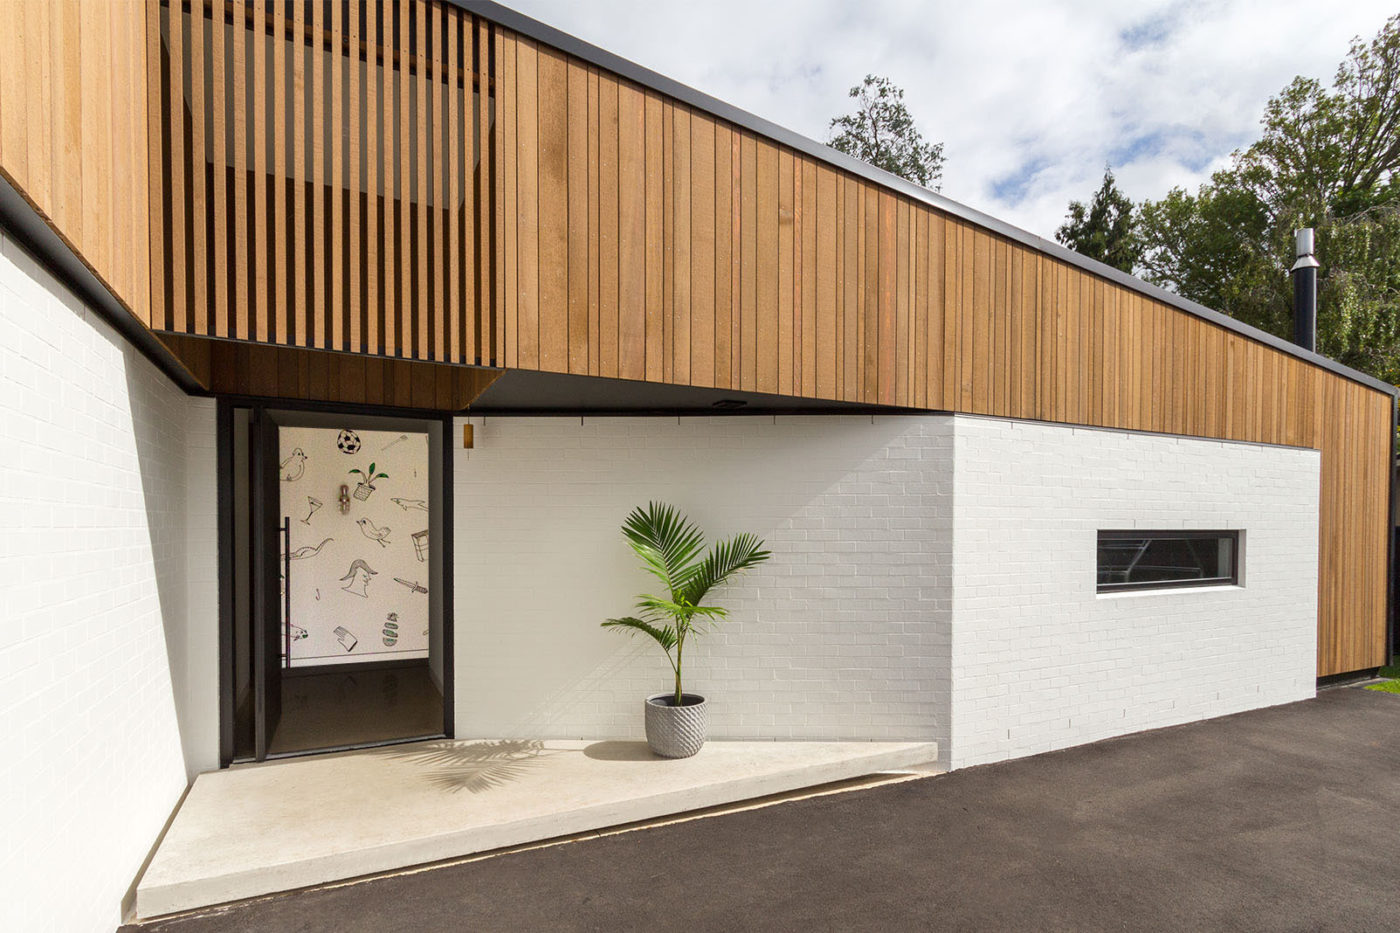 The Splay House entrance commission, Hamilton, 2016. Architect & photo: Edwards White Architects